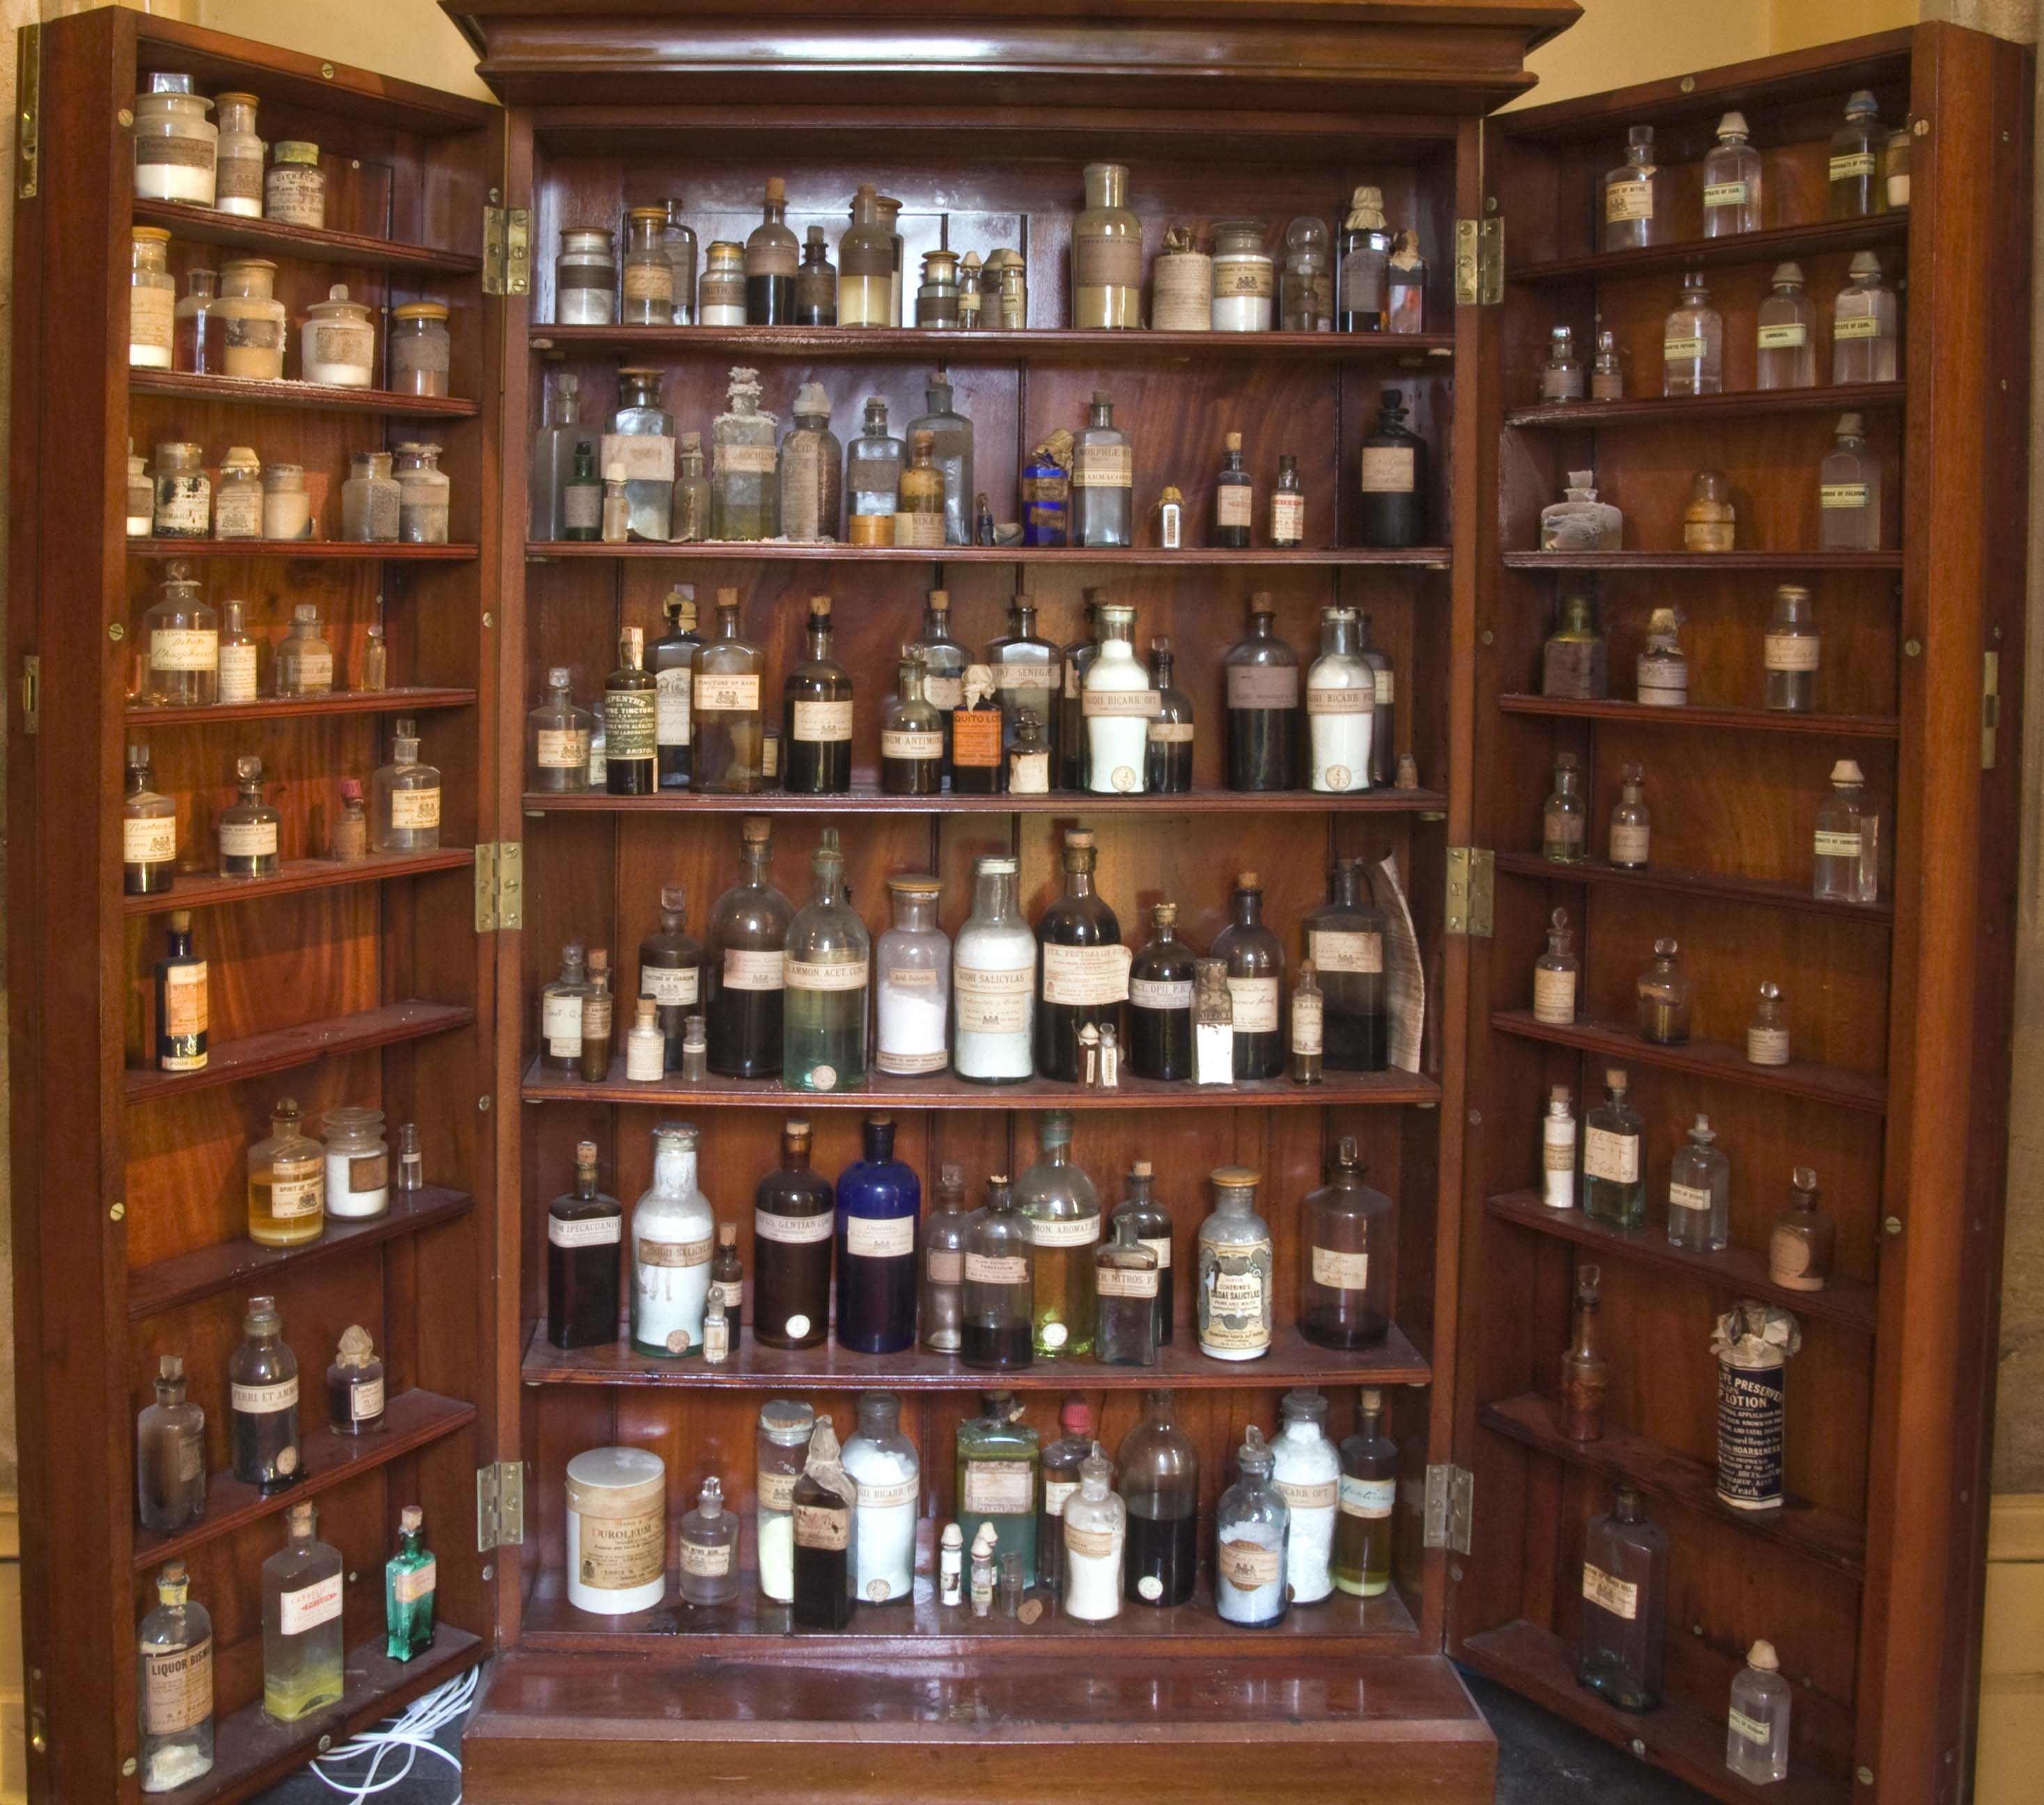 mesmerizing in at cabinets medicine the pinterest of on govannet trevett recessed brown home cabinet amusing woods wood references bathroom best decor magick ideas